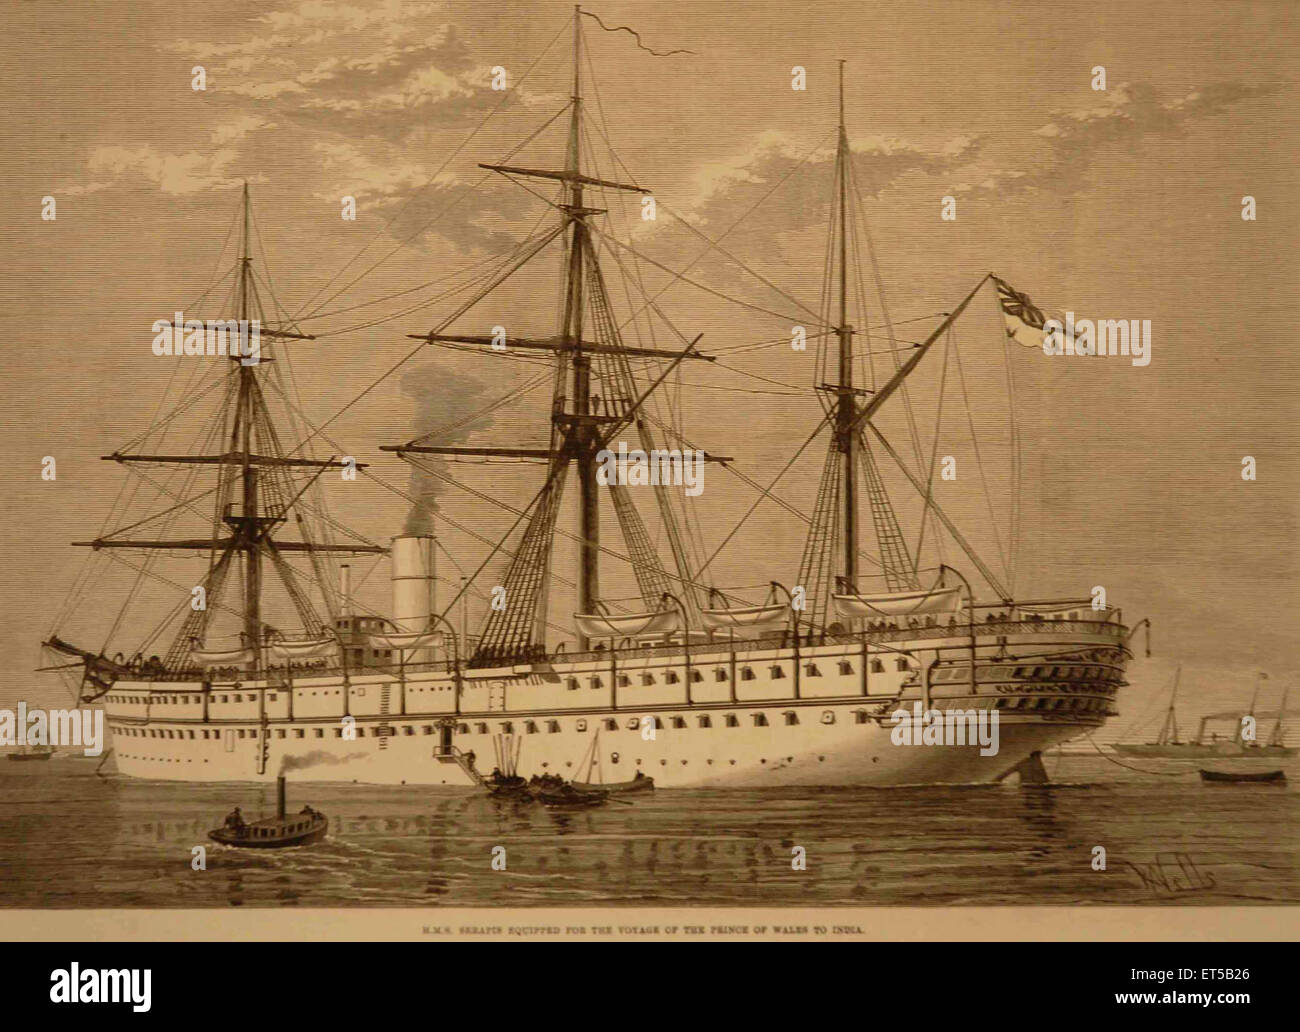 Lithographs H.M.S. Serapis Equipted for the Voyage of the Prince of Wales to India - Stock Image